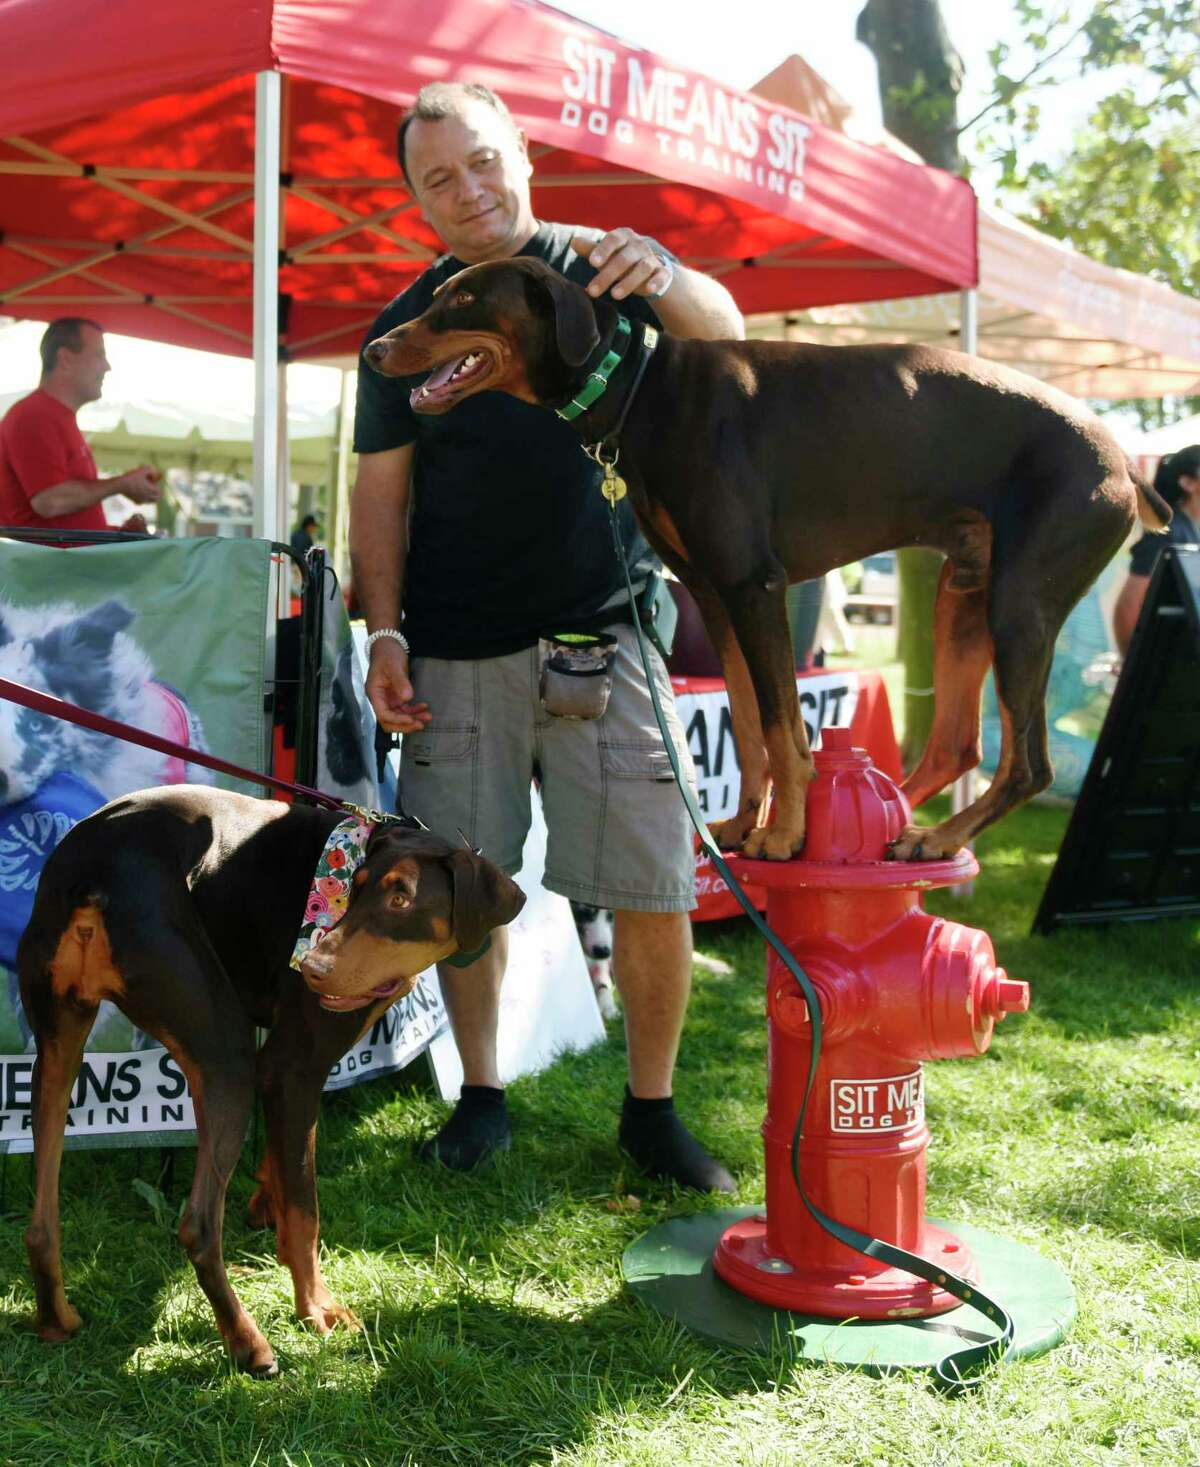 Michael Otsuka, of Mount Vernon, N.Y., pets his Doberman Pinscher Griffon, standing on a fire hydrant, at Adopt-a-Dog's annual Puttin' on the Dog fundraiser and adoption event at Roger Sherman Baldwin Park in Greenwich, Conn. Sunday, Sept. 26, 2021. The event featured music, pet-related vendors, demonstrations, competitions, and more fun activities for dogs and pet lovers.